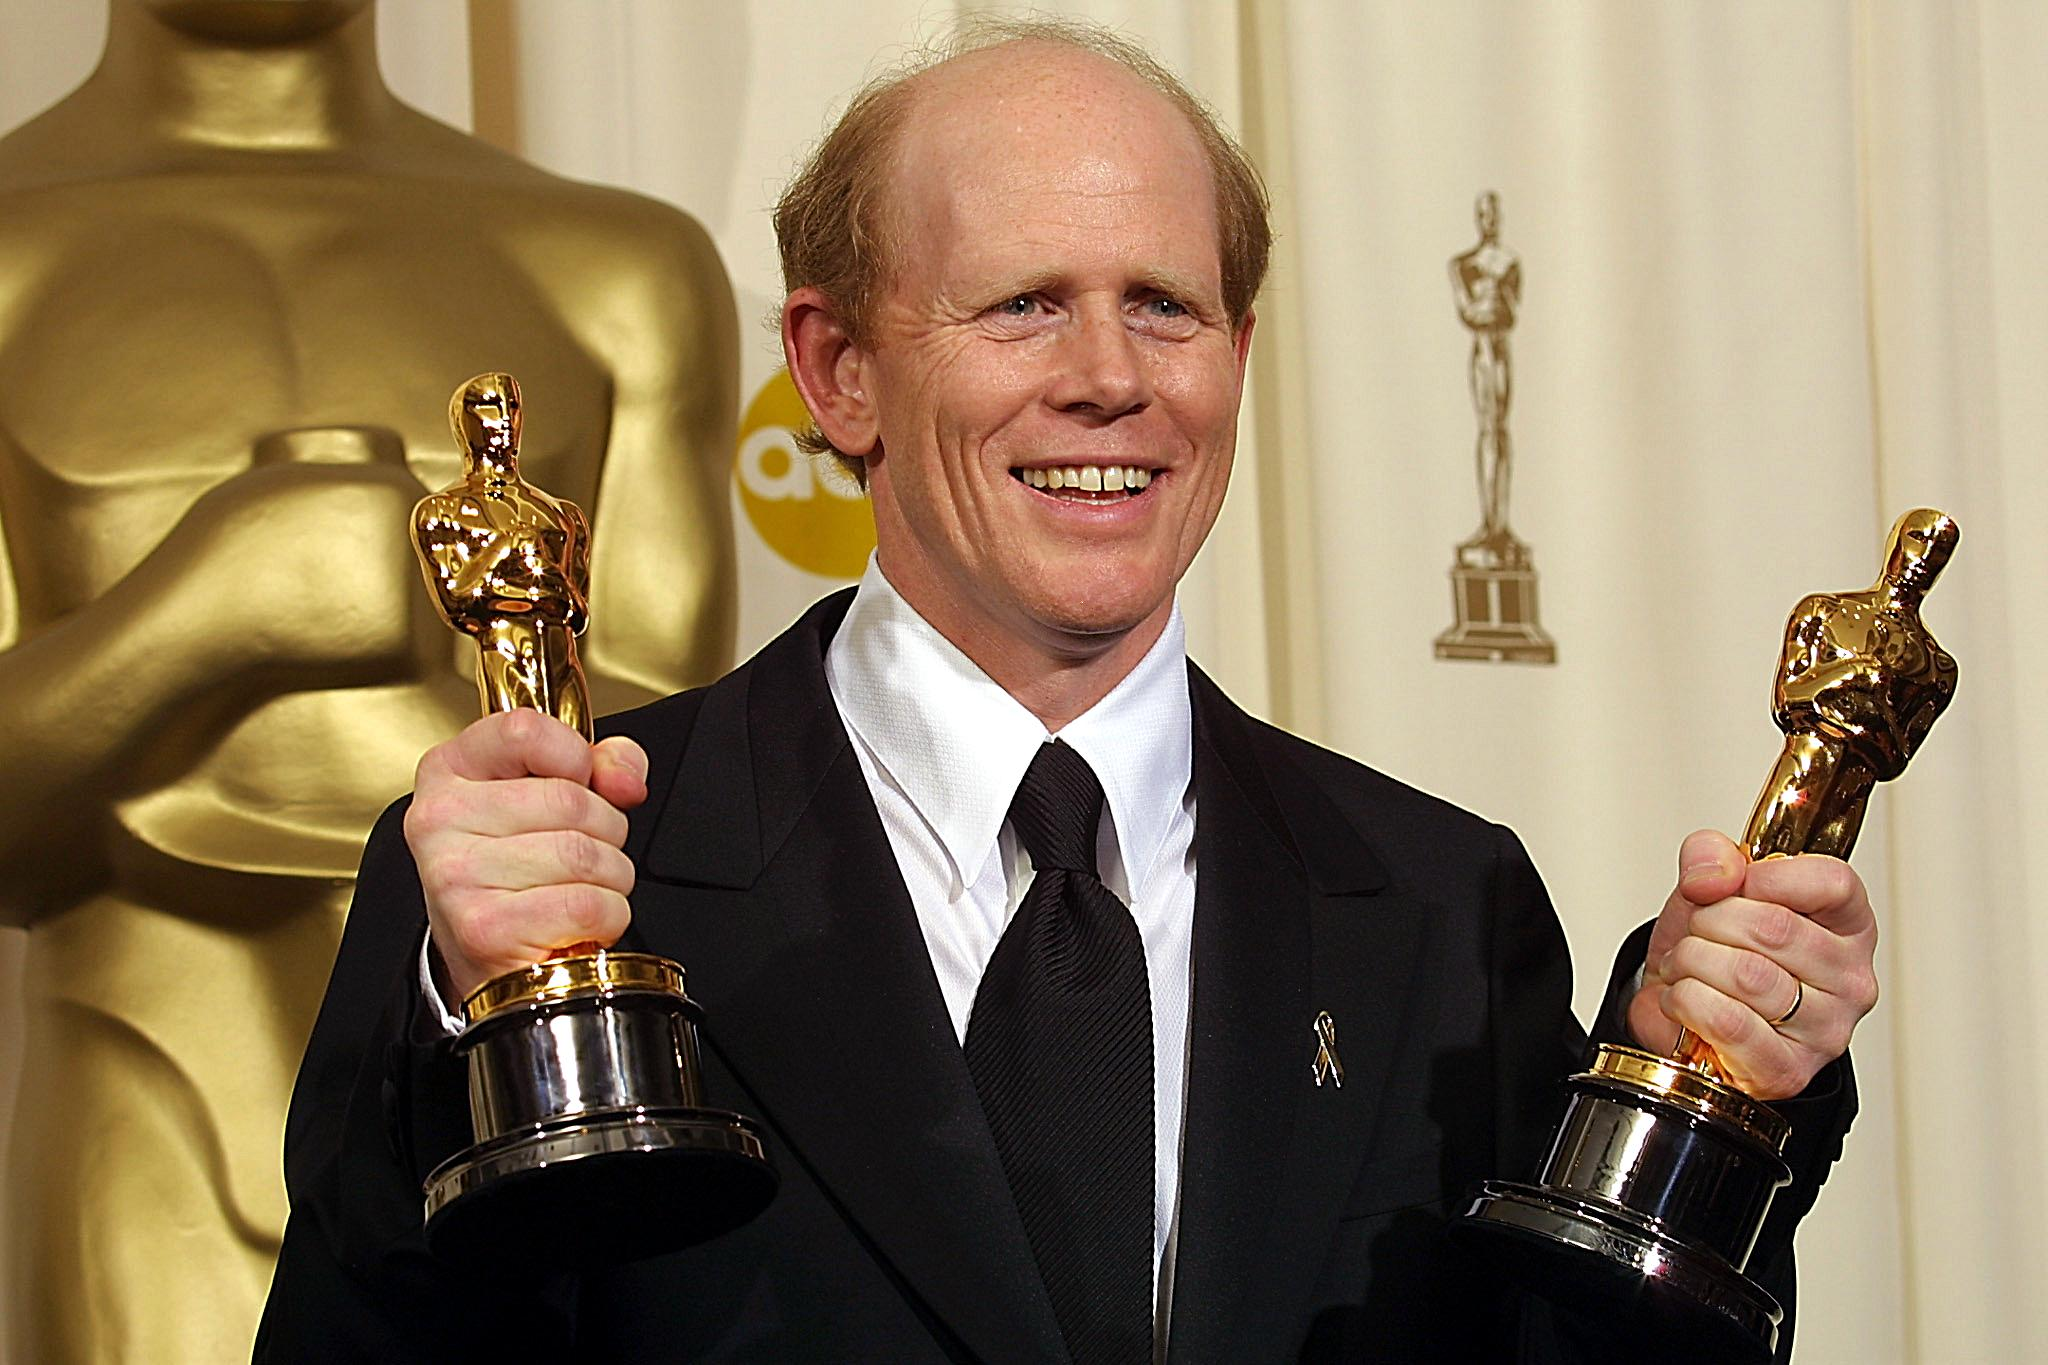 Ron Howard holds his Oscars and poses